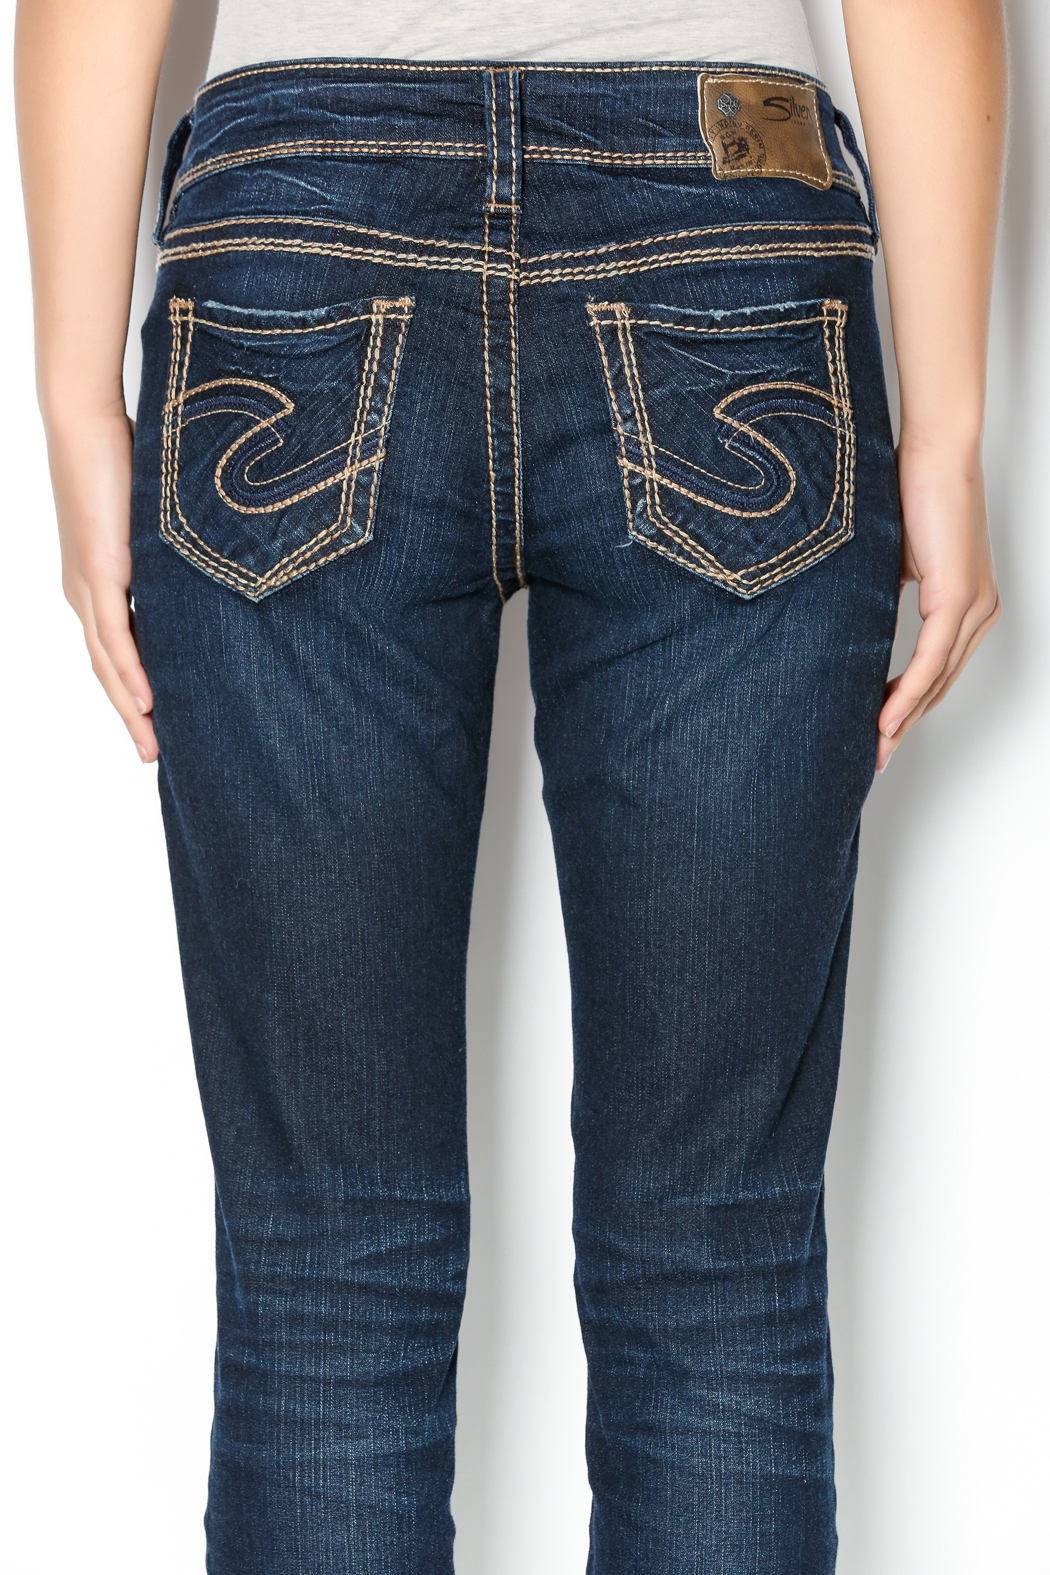 Silver Suki Straight Jeans from Boca Raton by Styles Boutique